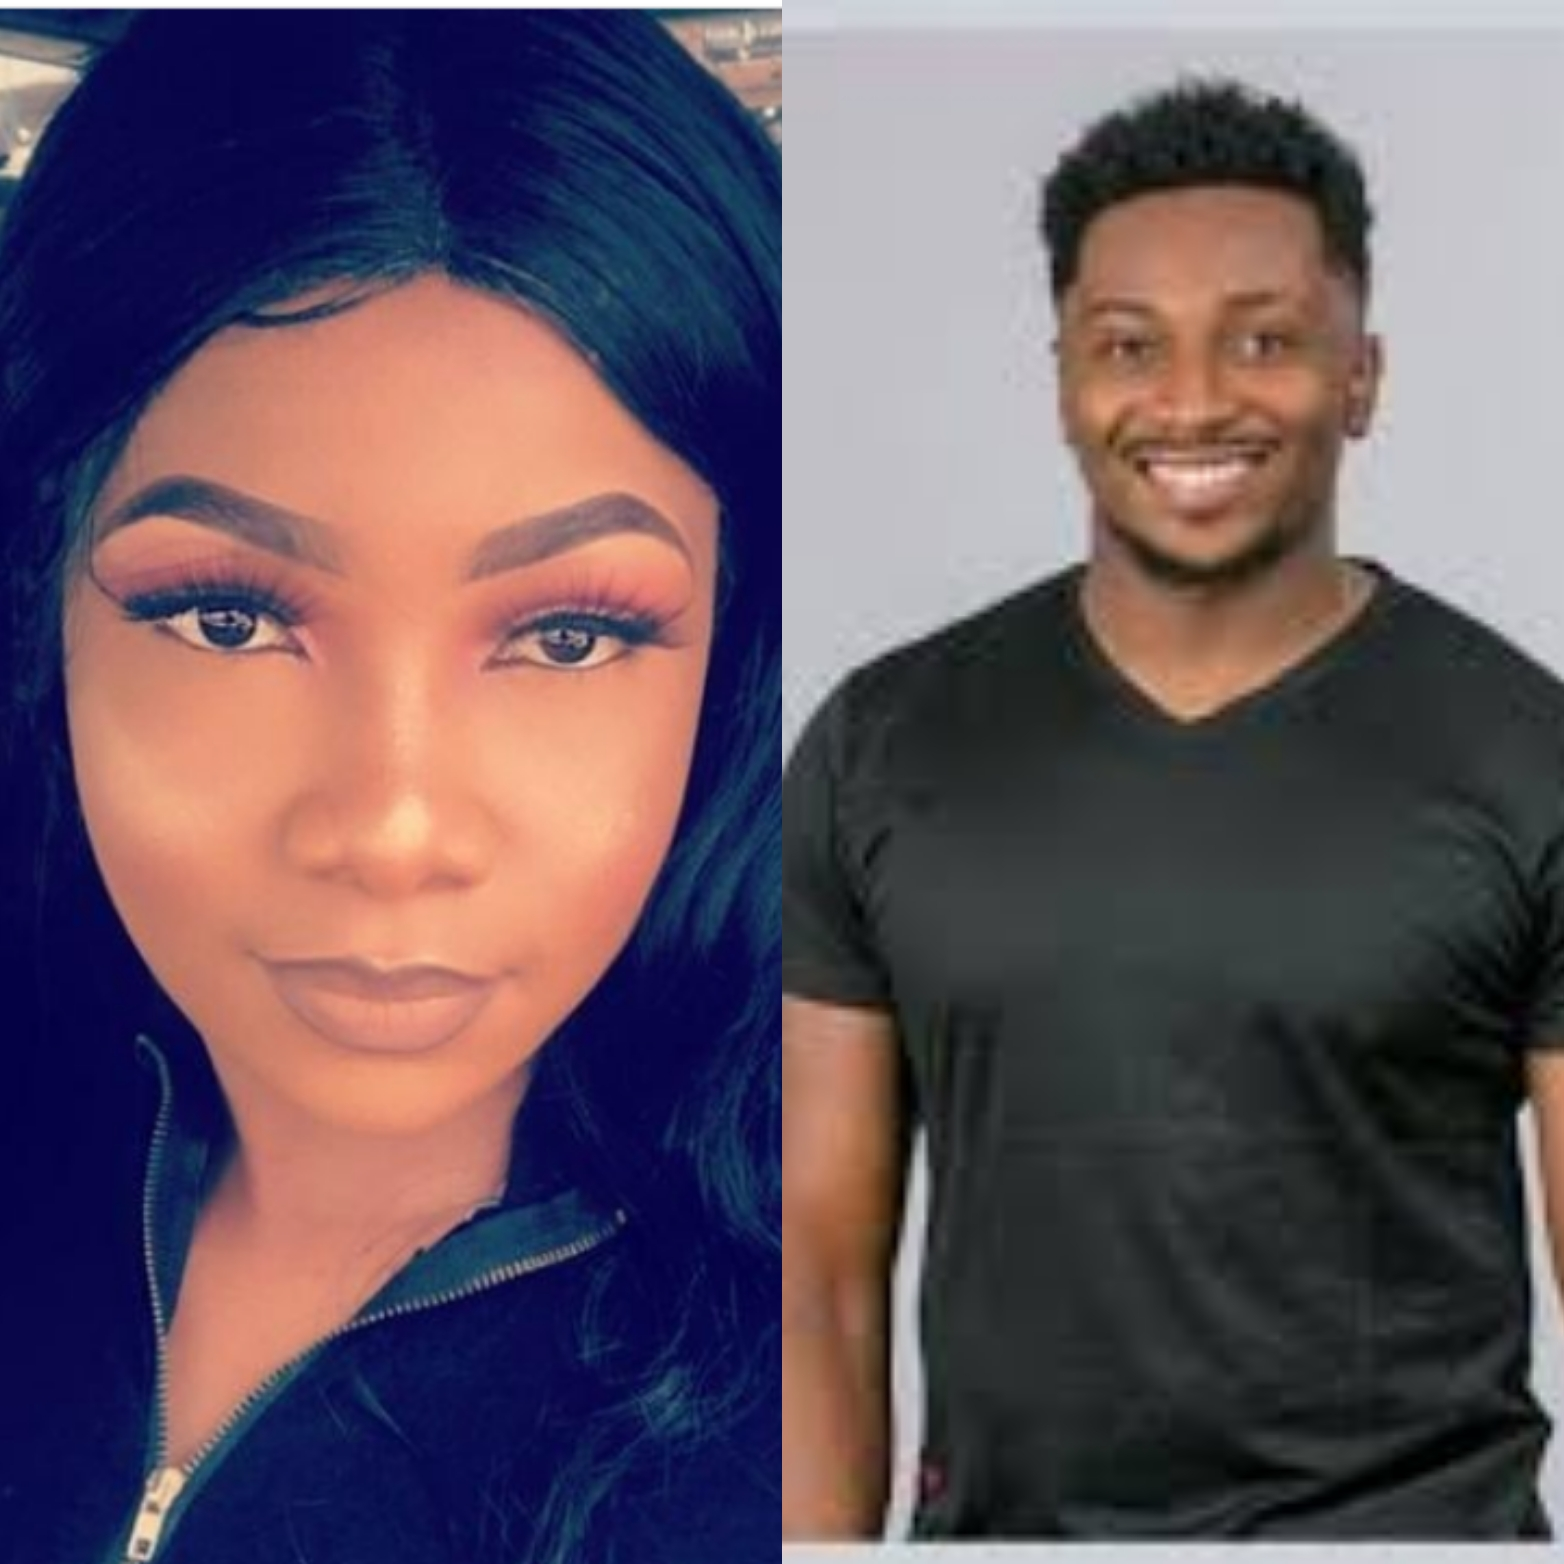 IMG 20190909 115818 - BBNaija: Tacha Is Fire, But If You Know Her You Will Love Her — Sir Dee